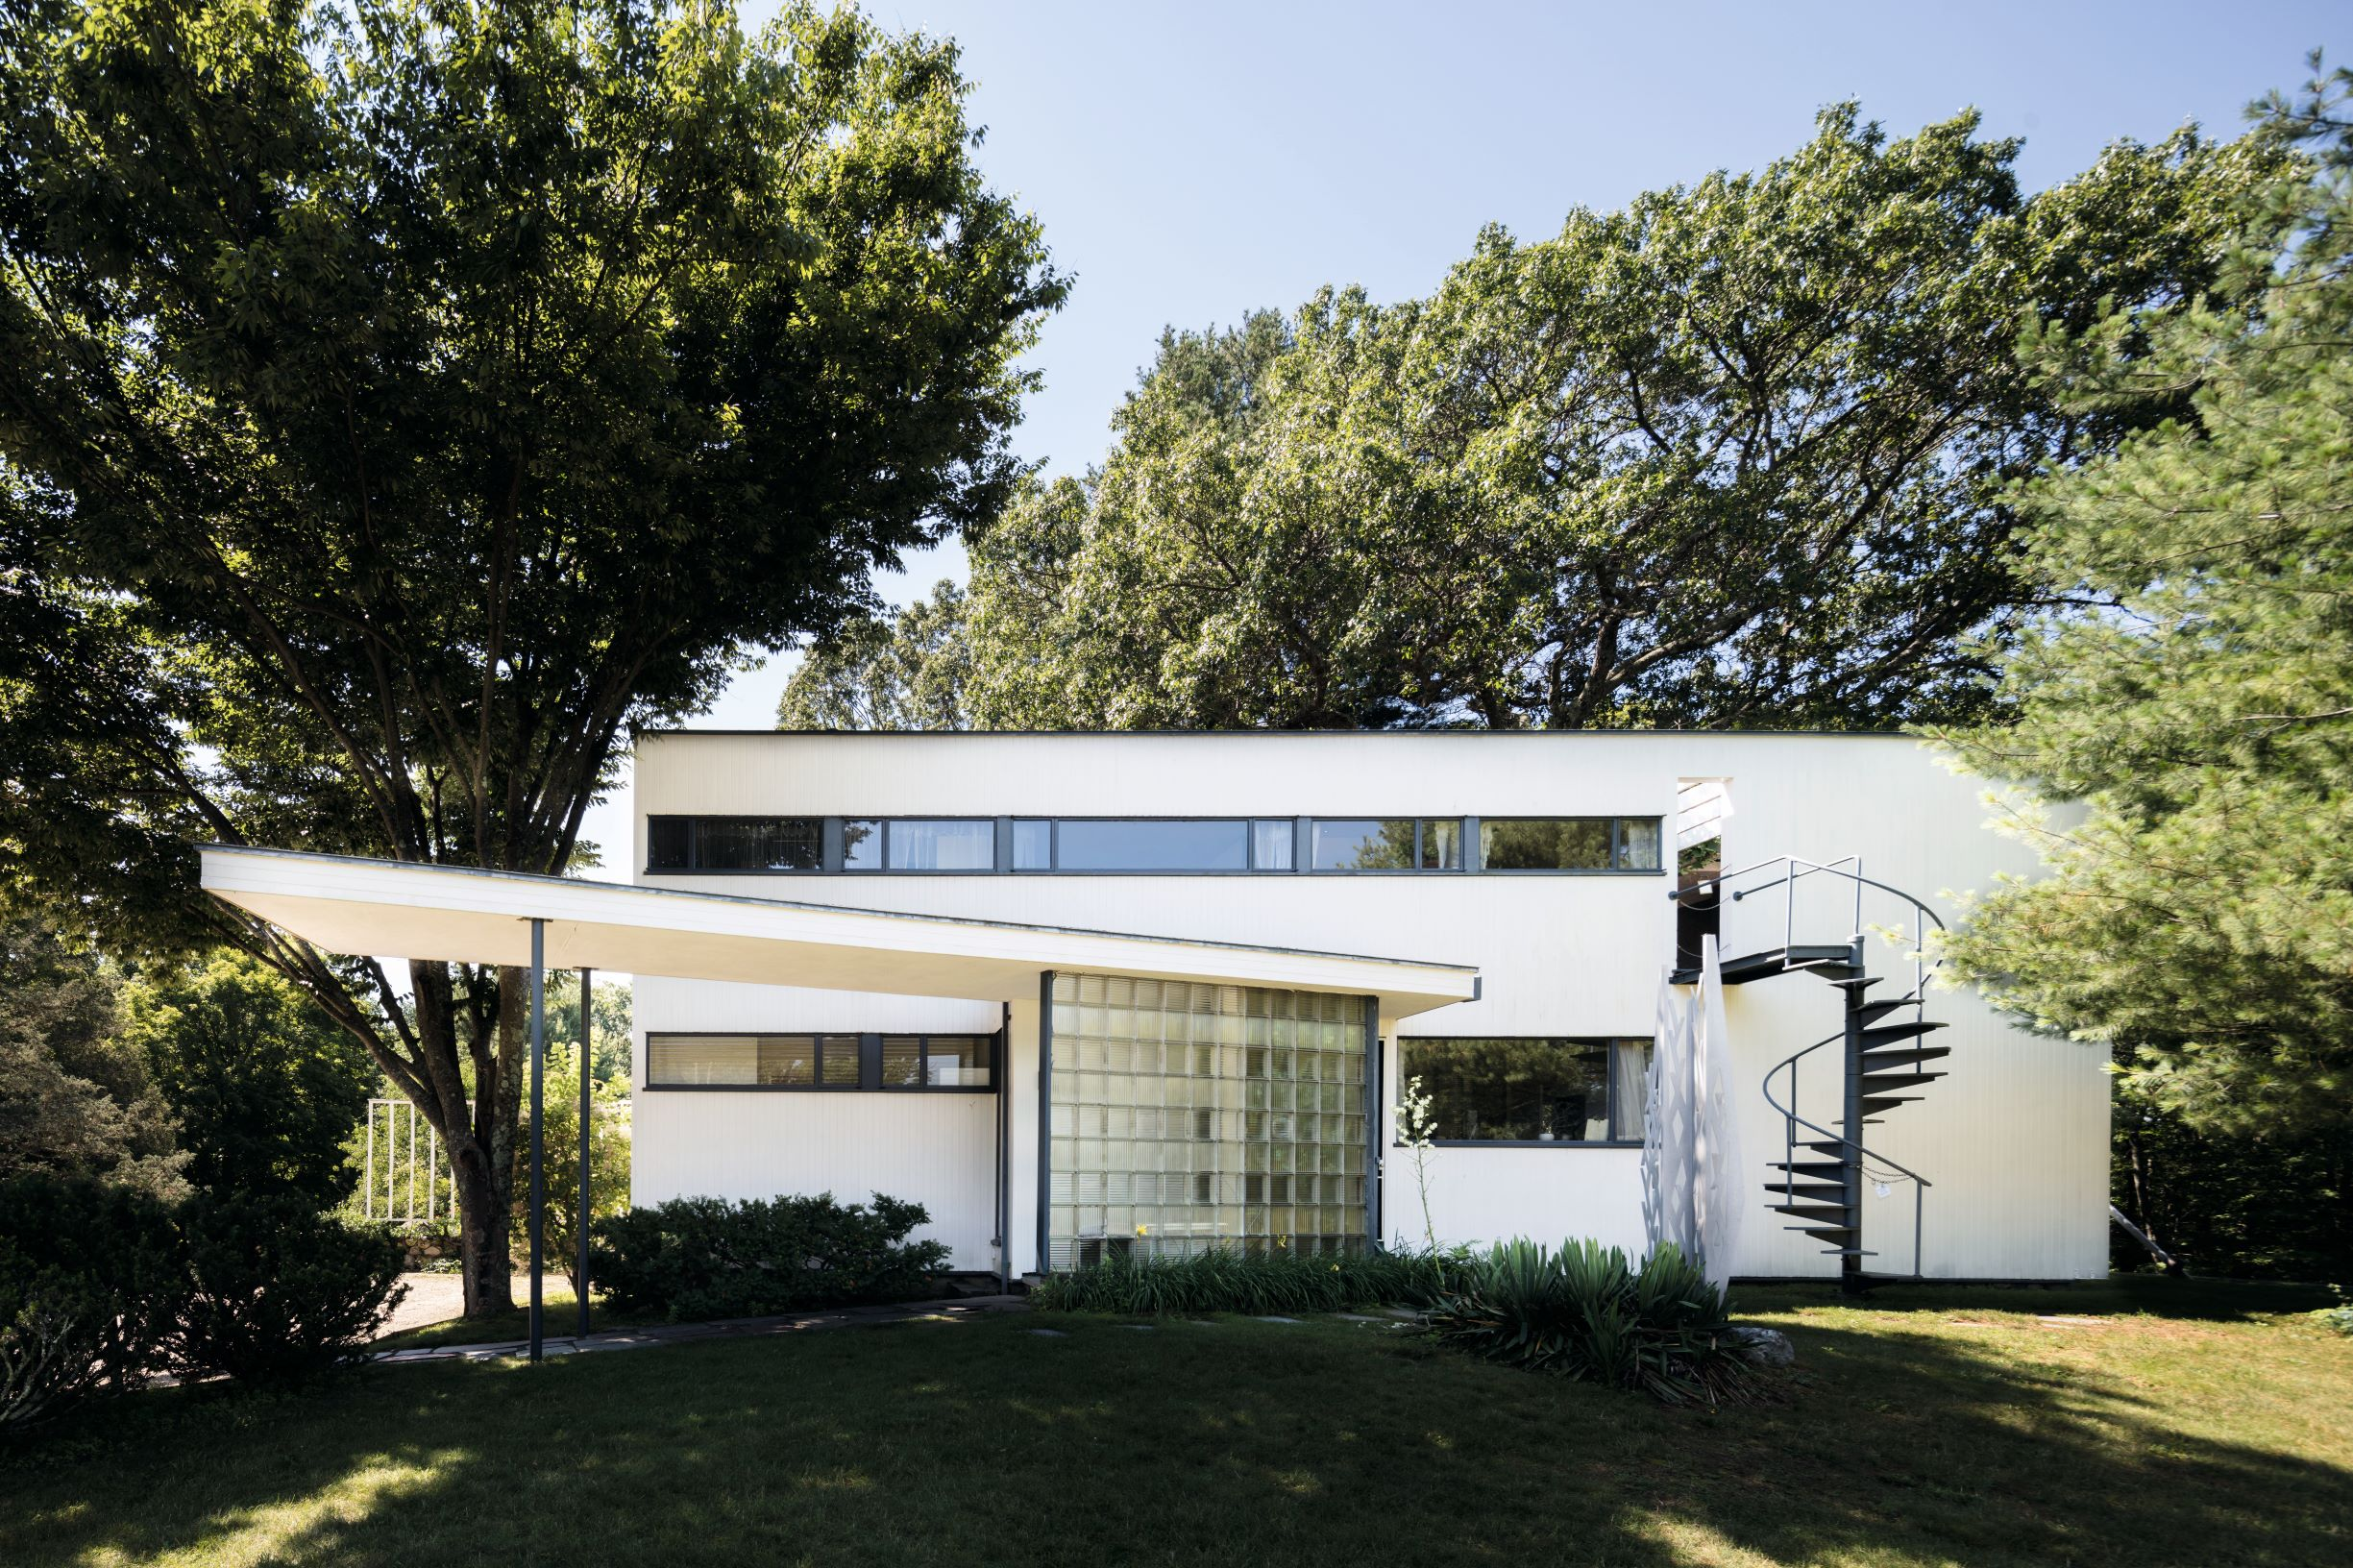 The Gropius House, as featured in Mid-Century Modern Architecture Travel Guide: East Coast USA